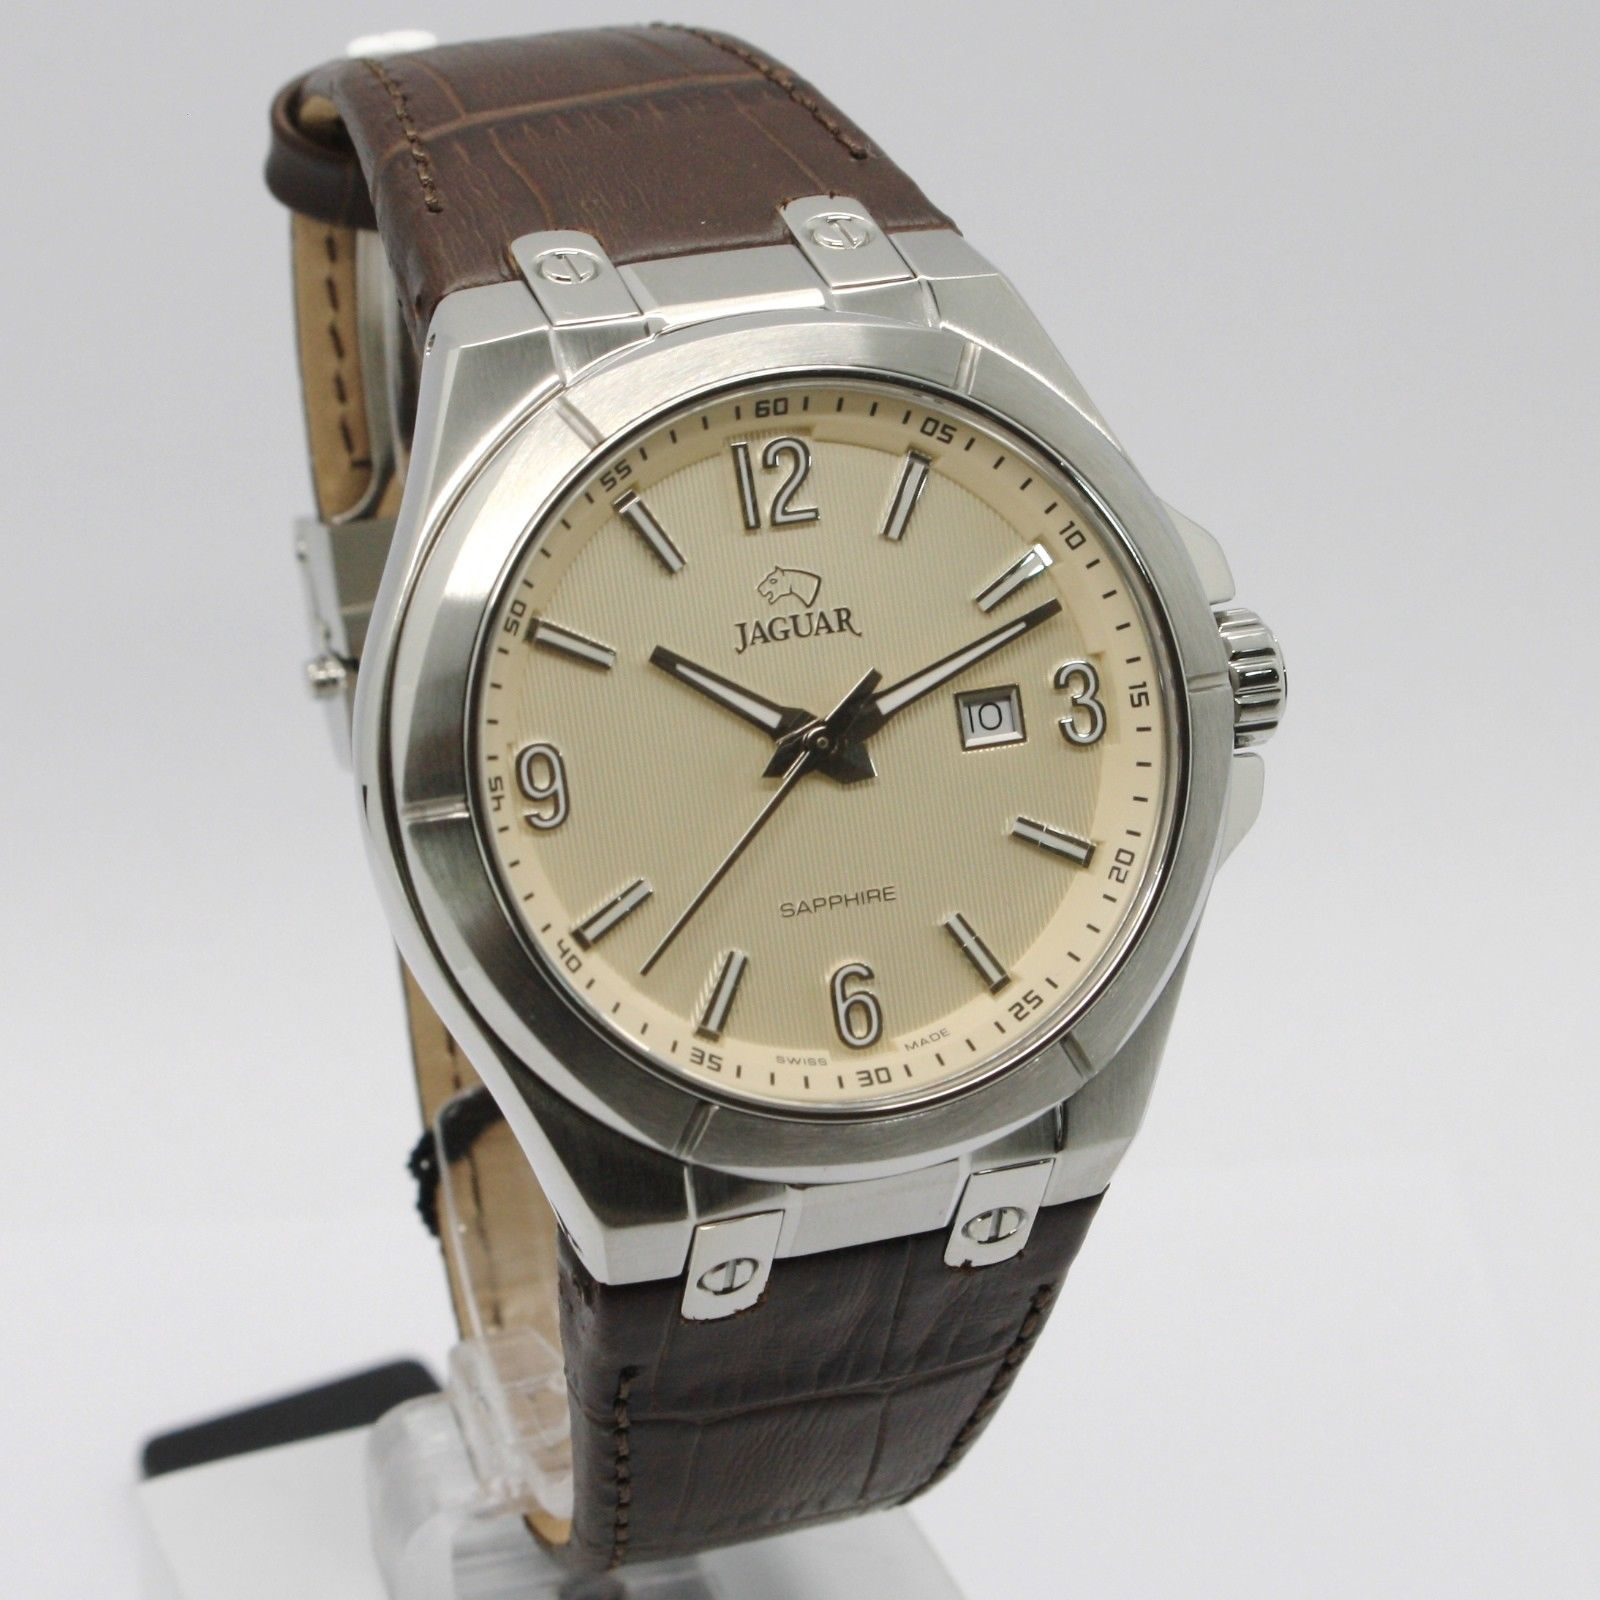 JAGUAR WATCH, SWISS MADE, SAPPHIRE CRYSTAL, 44 MM CASE, BEIGE, BROWN WITH DATE